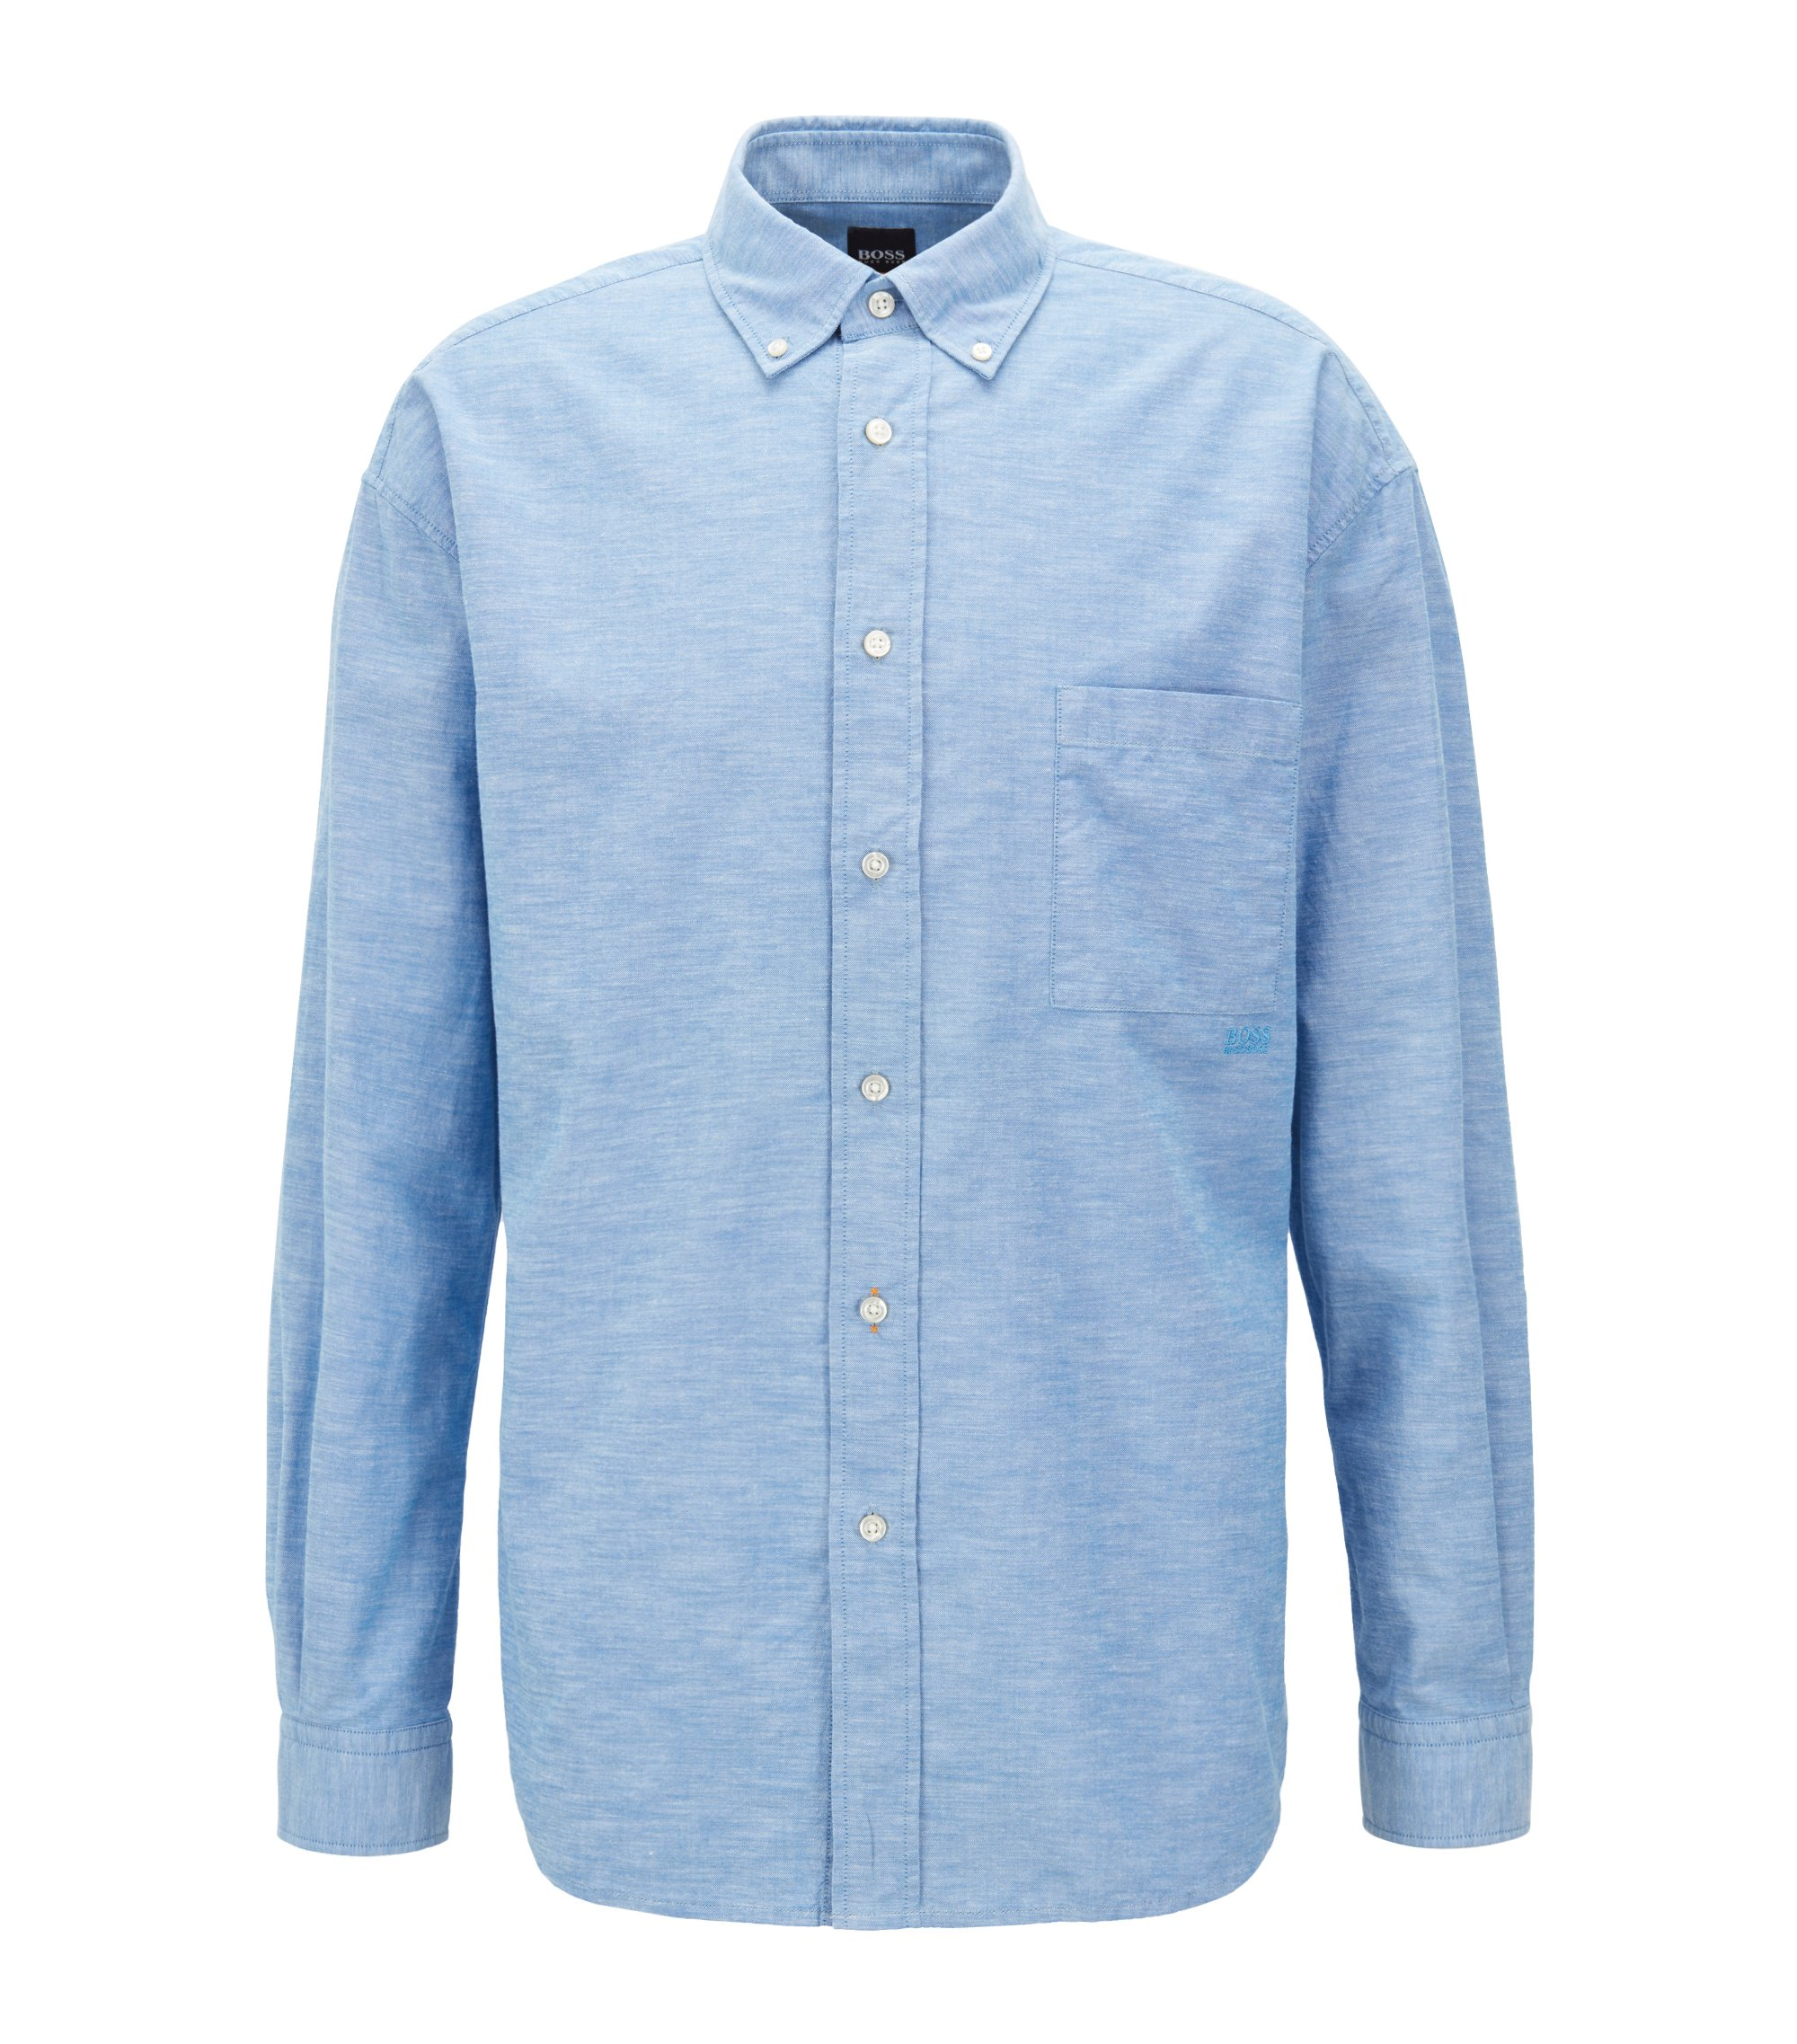 Relaxed-Fit Oxford-Hemd aus Baumwolle mit Button-Down-Kragen, Hellblau